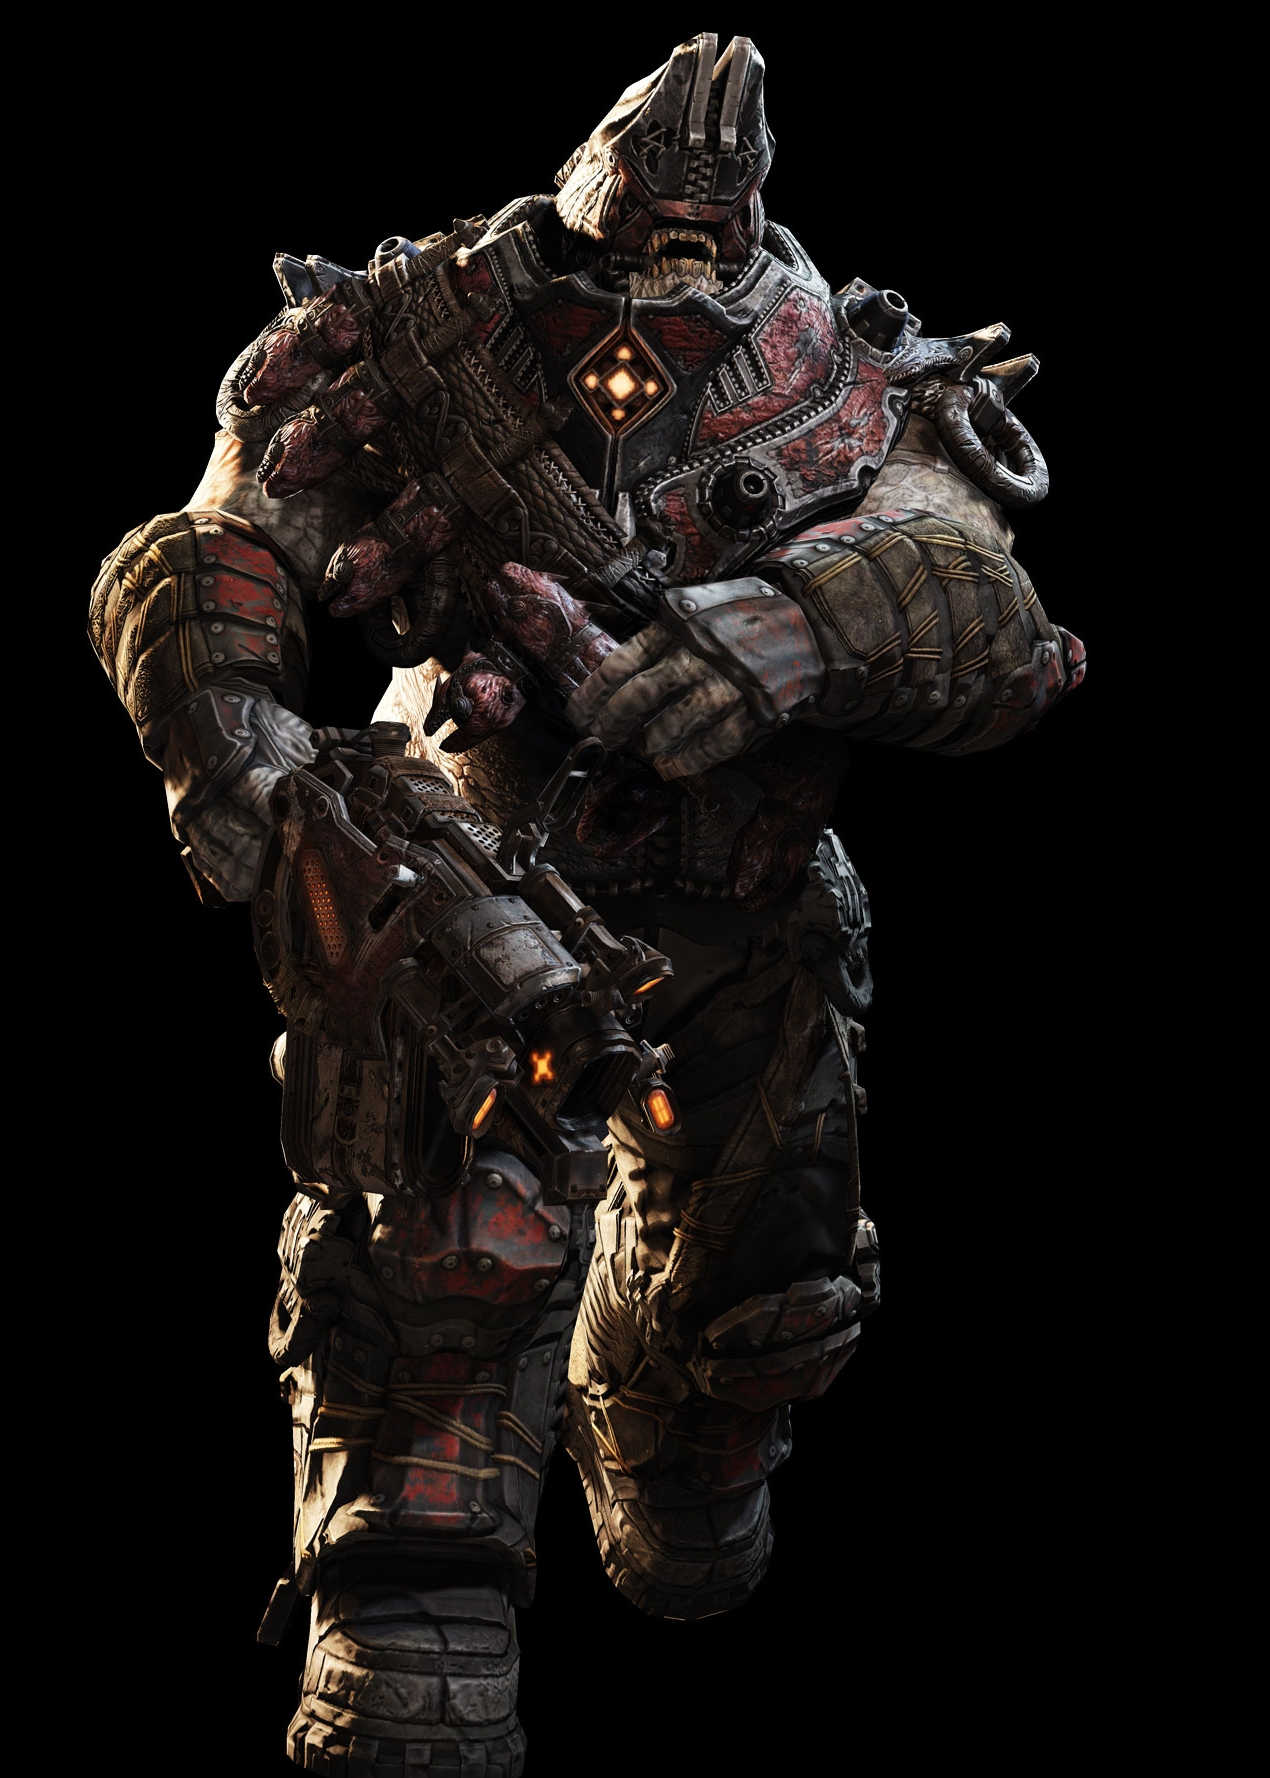 drone gears of war with Savage Boomer on 12736 likewise Gears Of War COG Helmets 265657564 moreover 2507653386 further 561411 besides Savage Boomer.